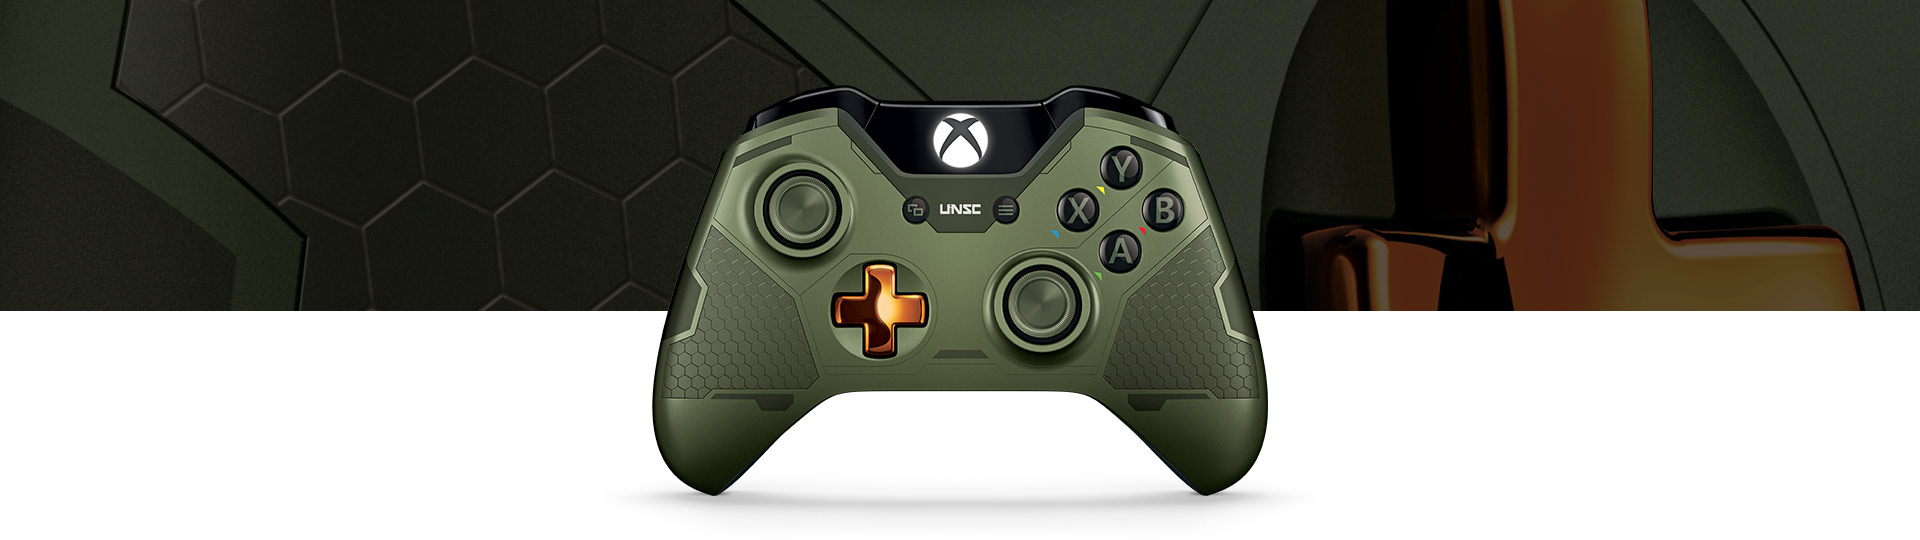 Xbox One Limited Edition Halo 5: Guardians – the Master Chief Wireless Controller